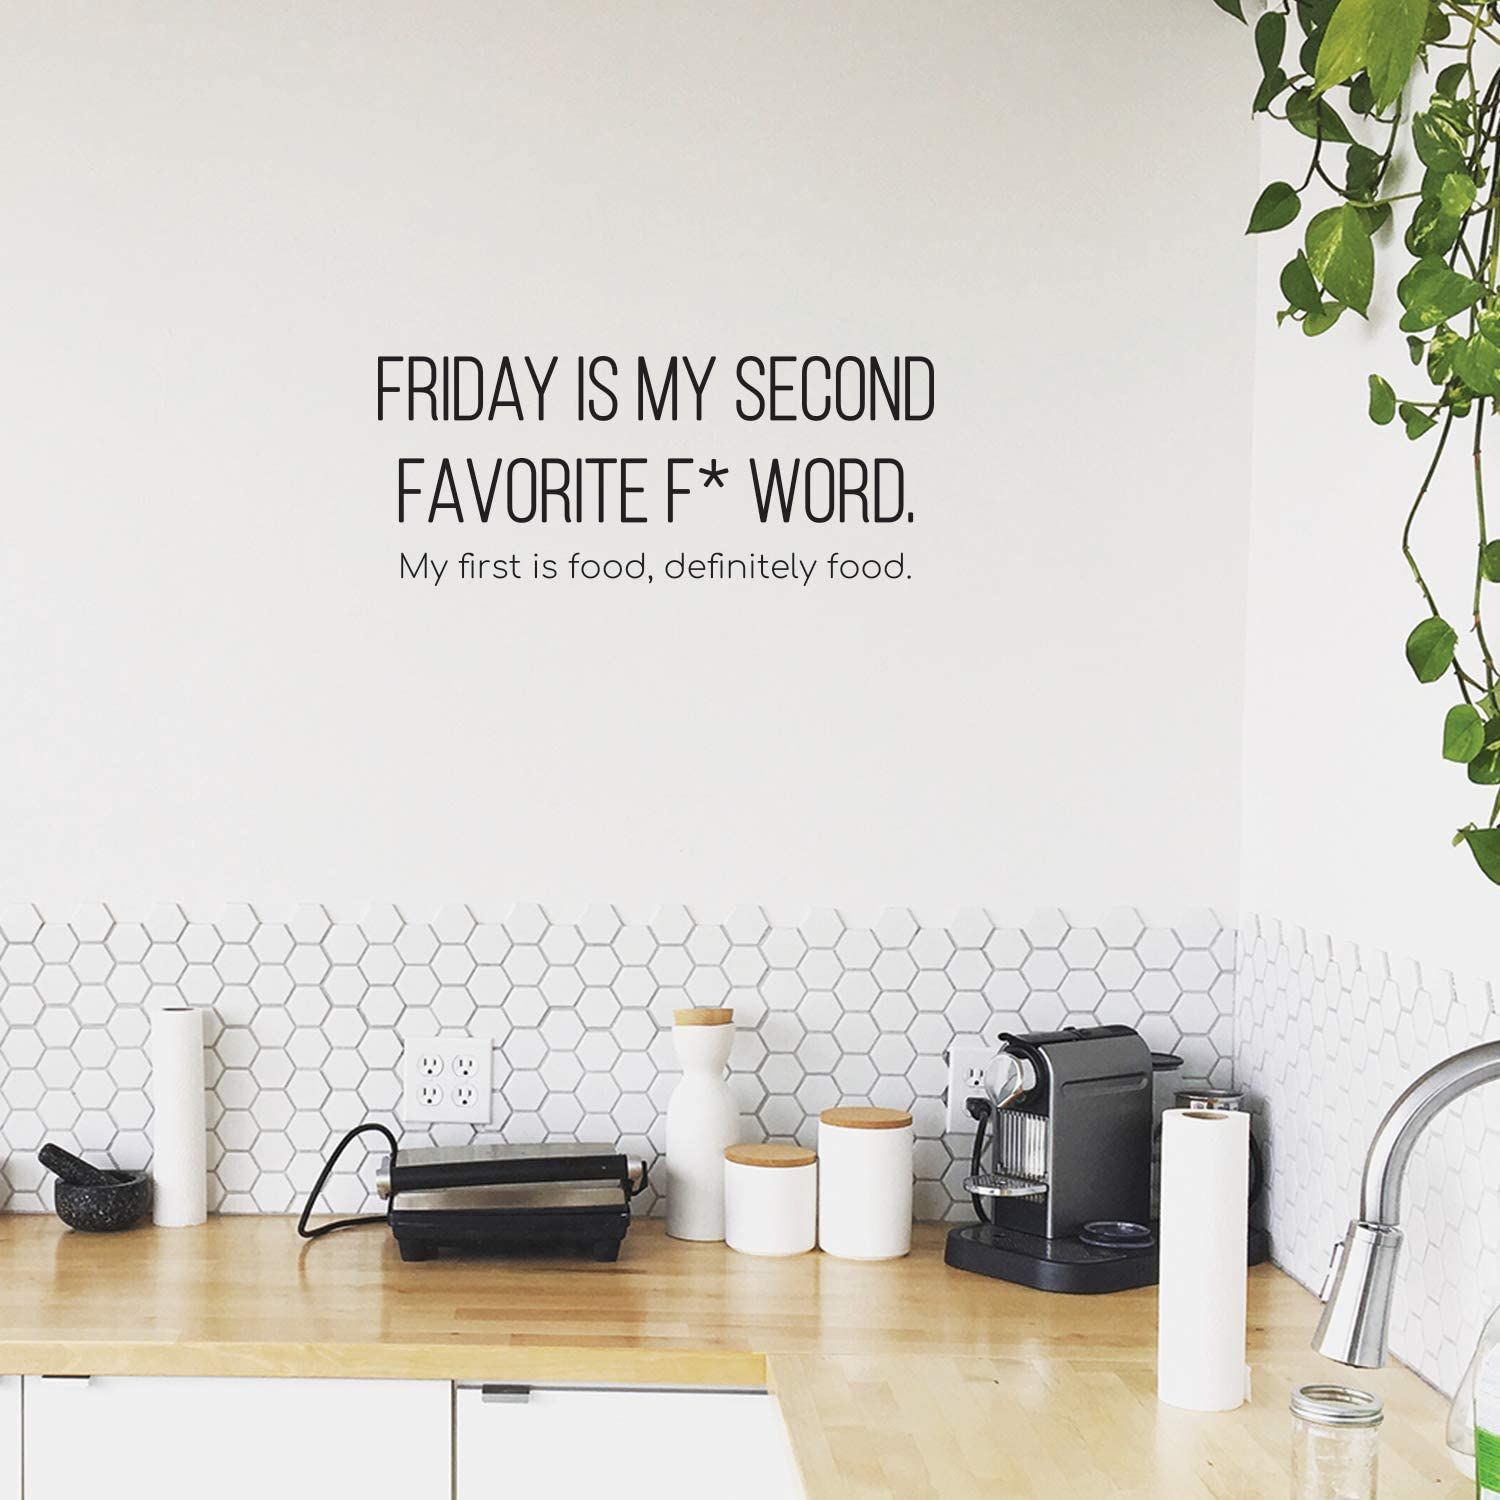 "Vinyl Wall Art Decal - Friday is My Second Favorite F Word My First is Food - 10"" x 25"" - Trendy Funny Humorous Quote for Home Apartment Bedroom Living Room Kitchen Restaurant Decoration Sticker"